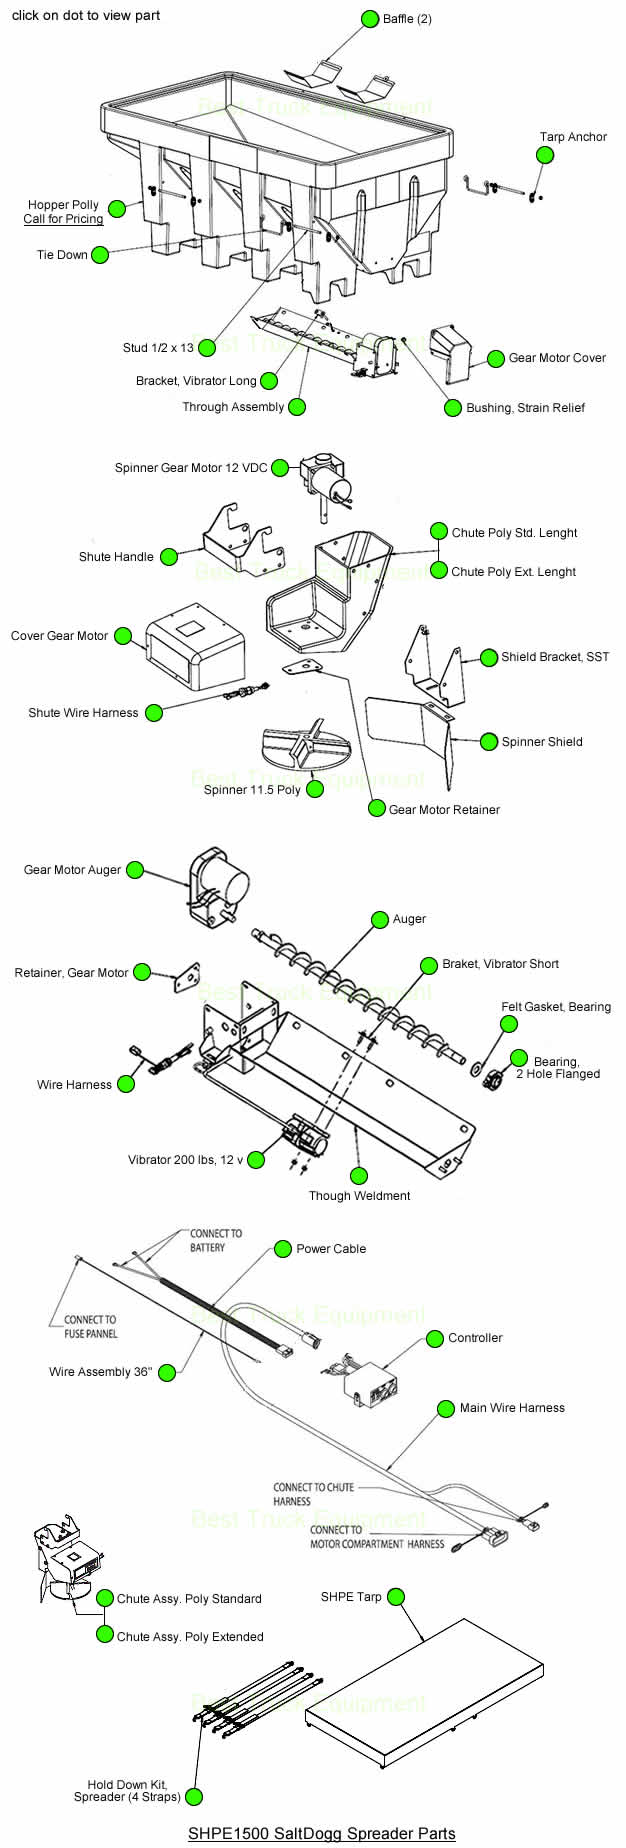 western 1000 salt spreader wiring diagram western buyers salt spreader controller wiring diagram buyers auto on western 1000 salt spreader wiring diagram